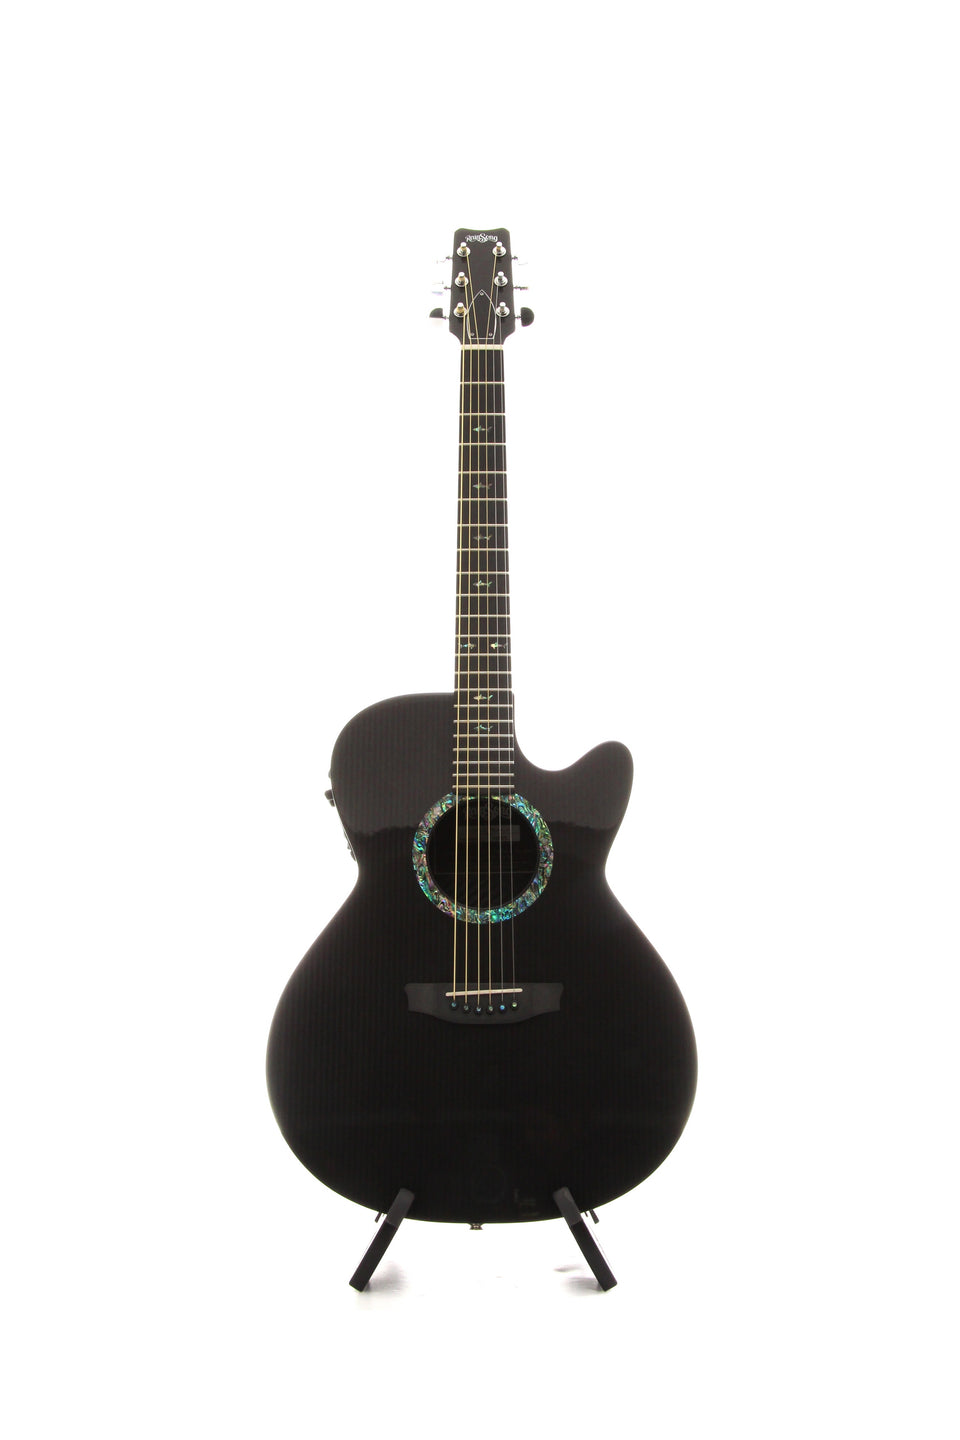 Rainsong WS1000N2 Carbon Fiber Acoustic Electric Guitar